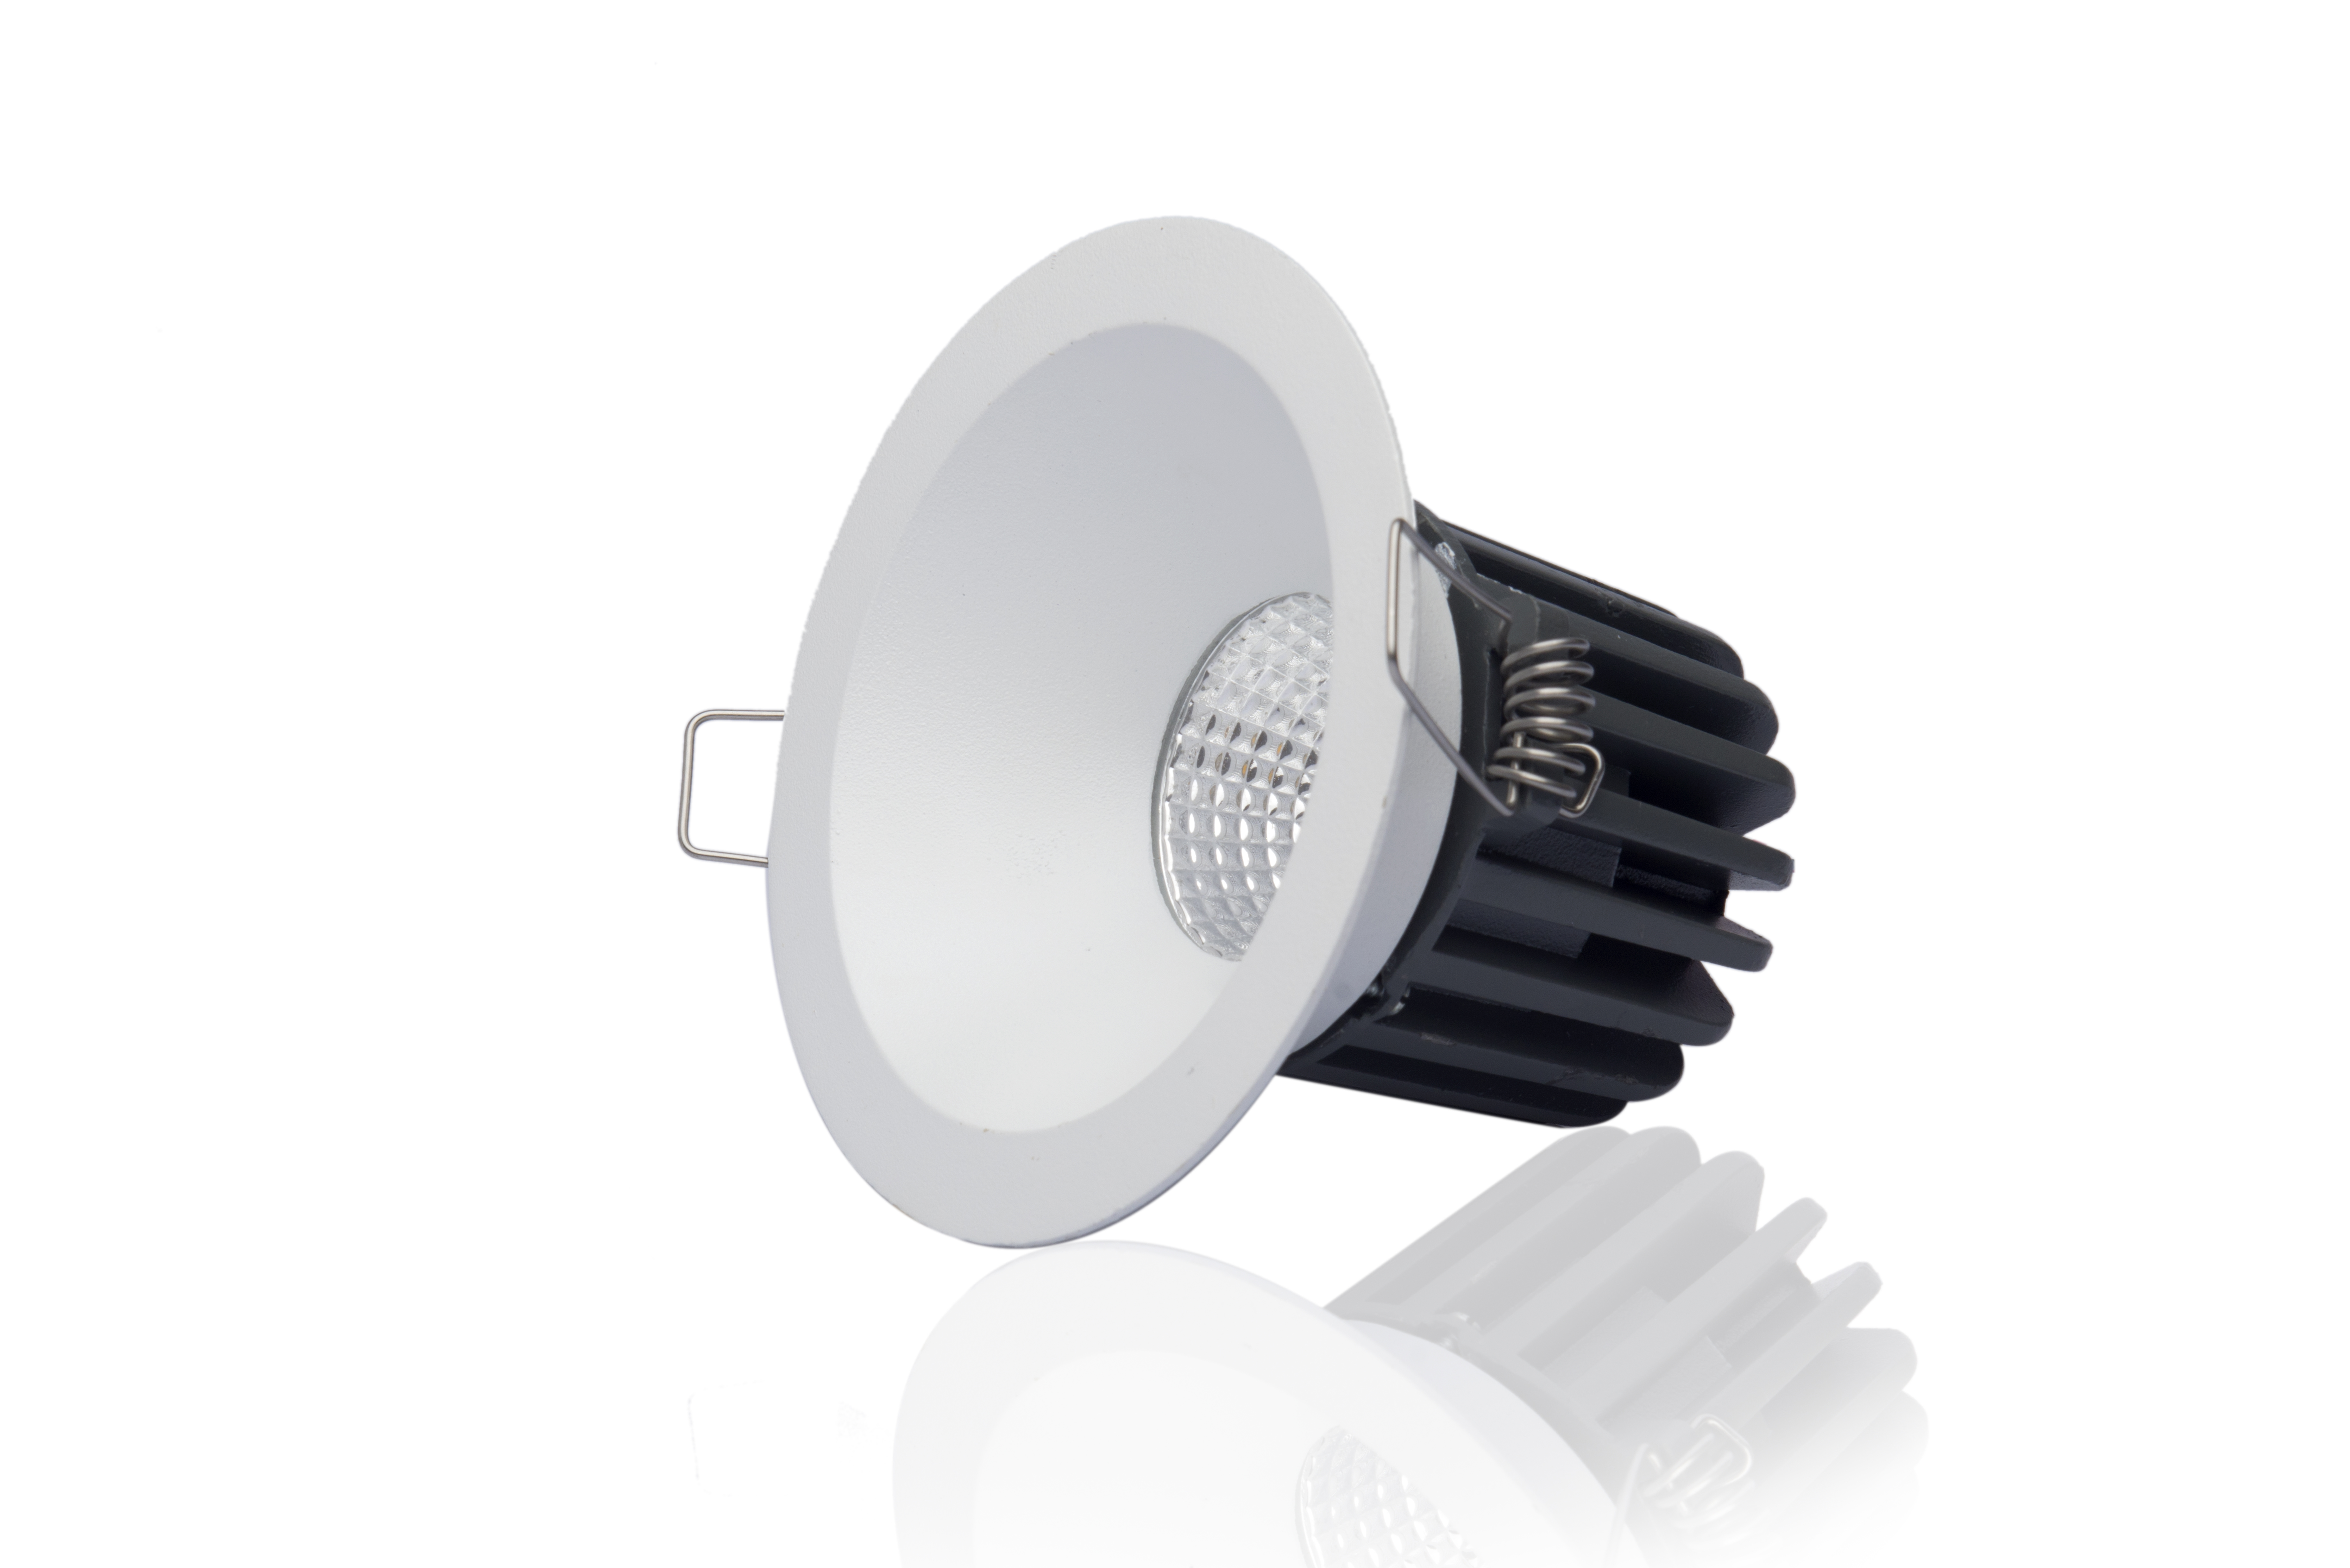 LED Delta Cob Spot Light